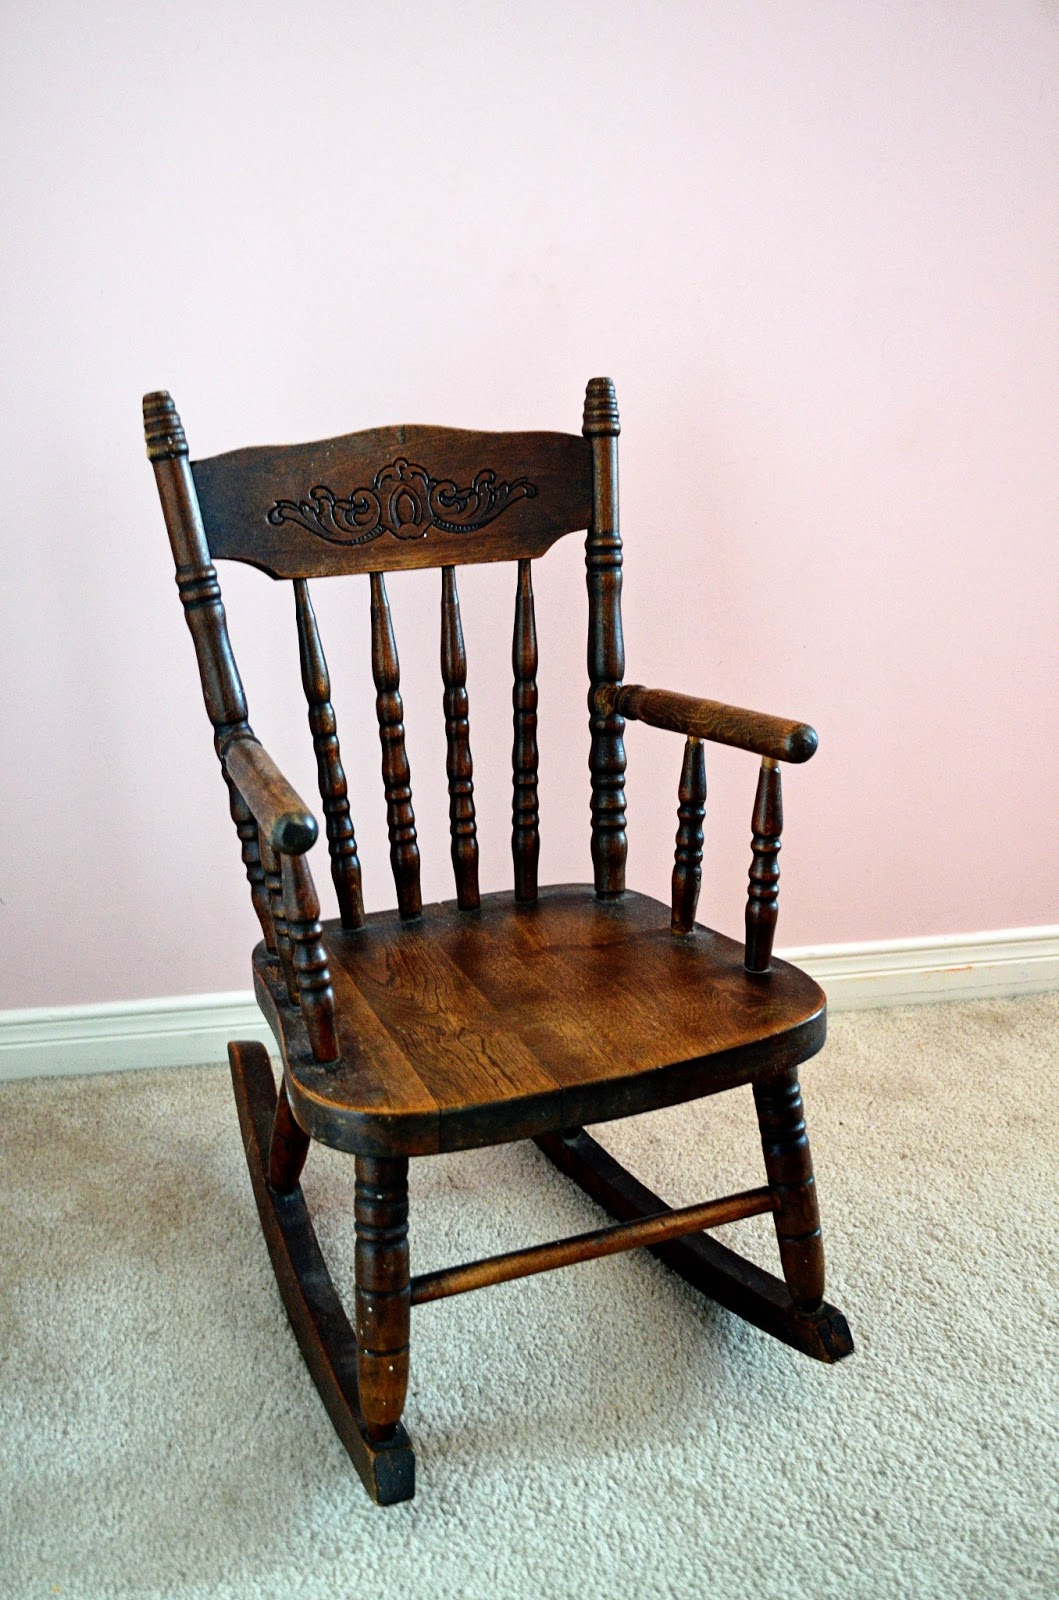 Antique Chairs - Woman In Real Life:The Art Of The Everyday: Antique Chairs